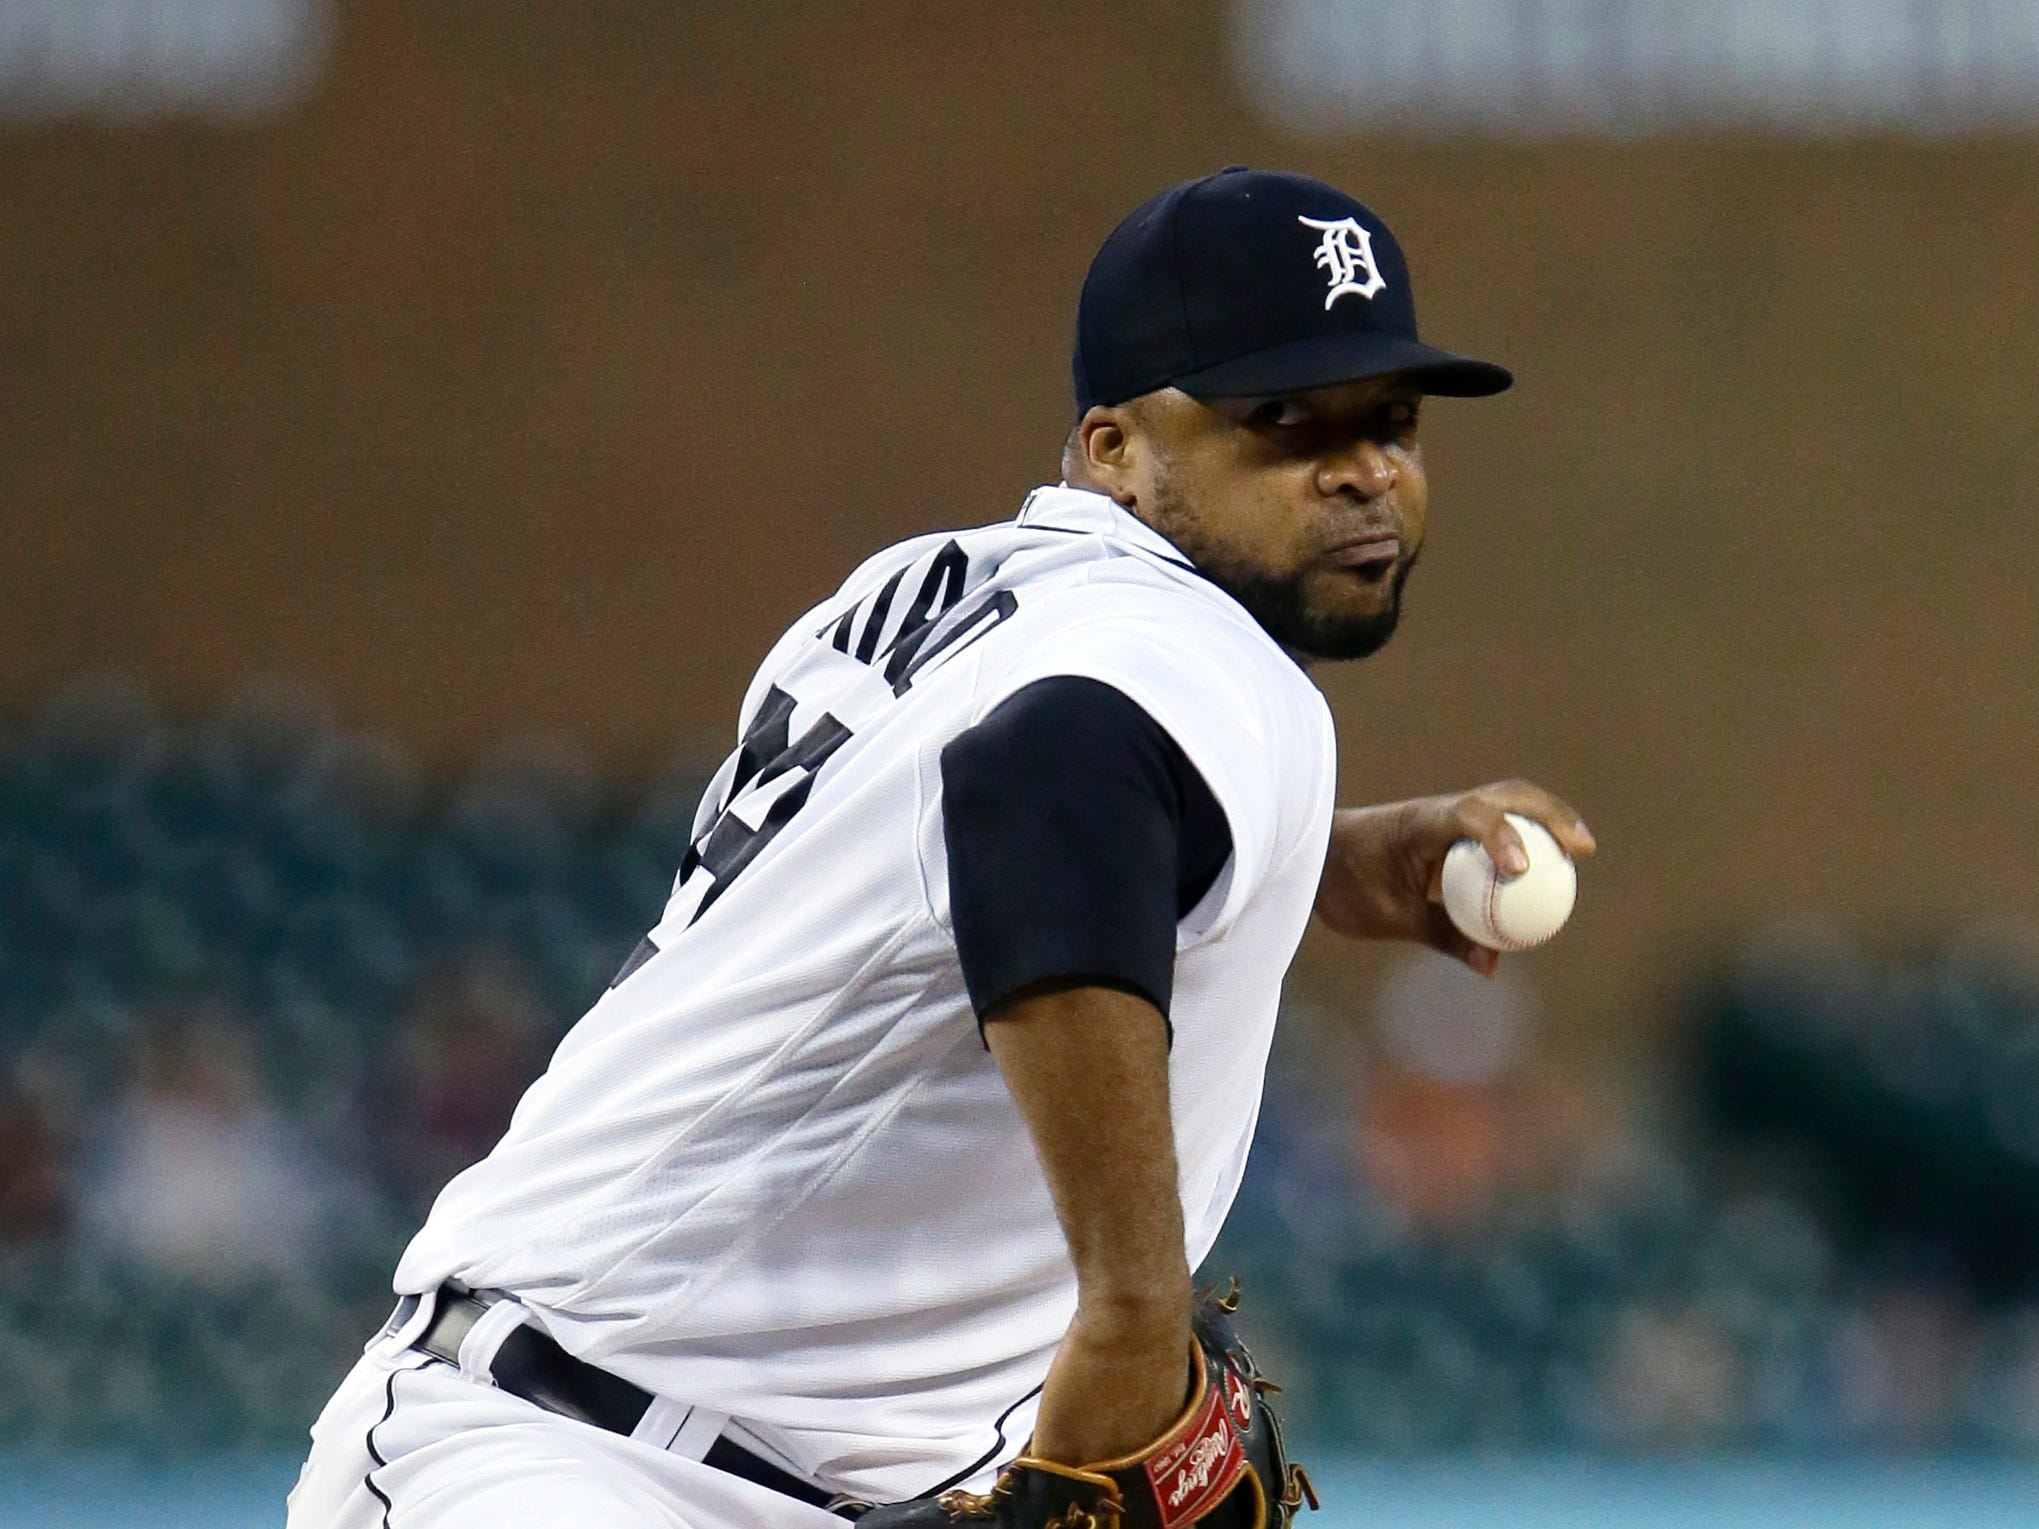 Detroit Tigers' Francisco Liriano pitches against the Kansas City Royals during the second inning at Comerica Park on Sept. 21, 2018 in Detroit.